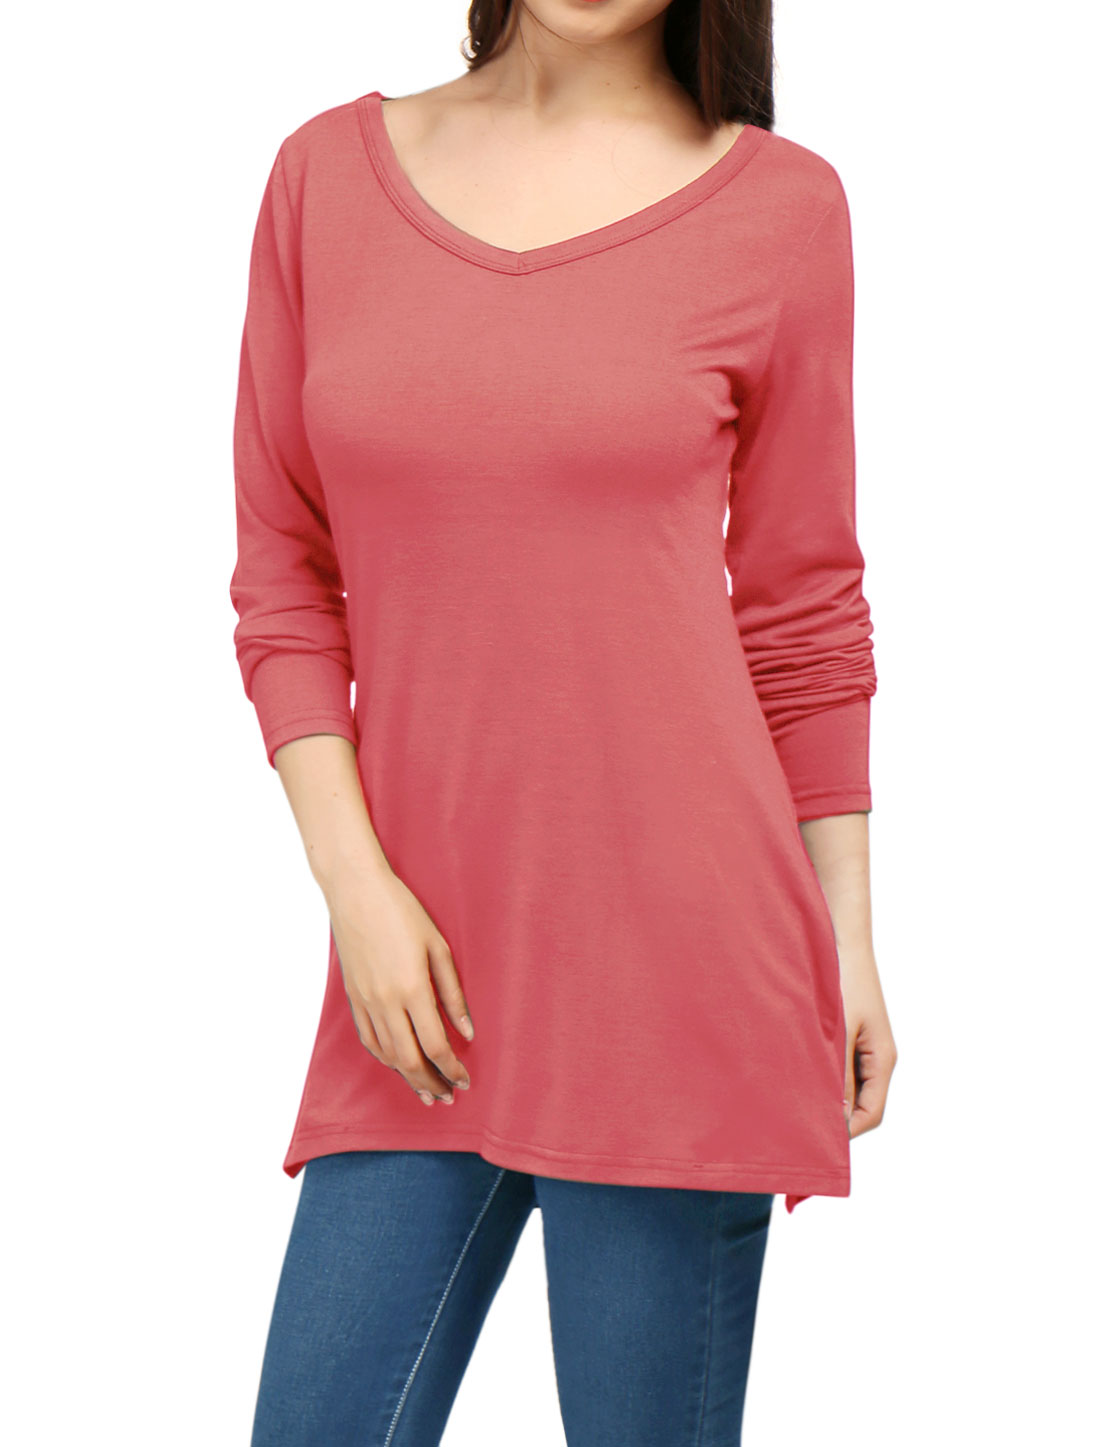 Allegra K Woman Vented Sides Two Pockets V-Neckline Longline Top Coral M